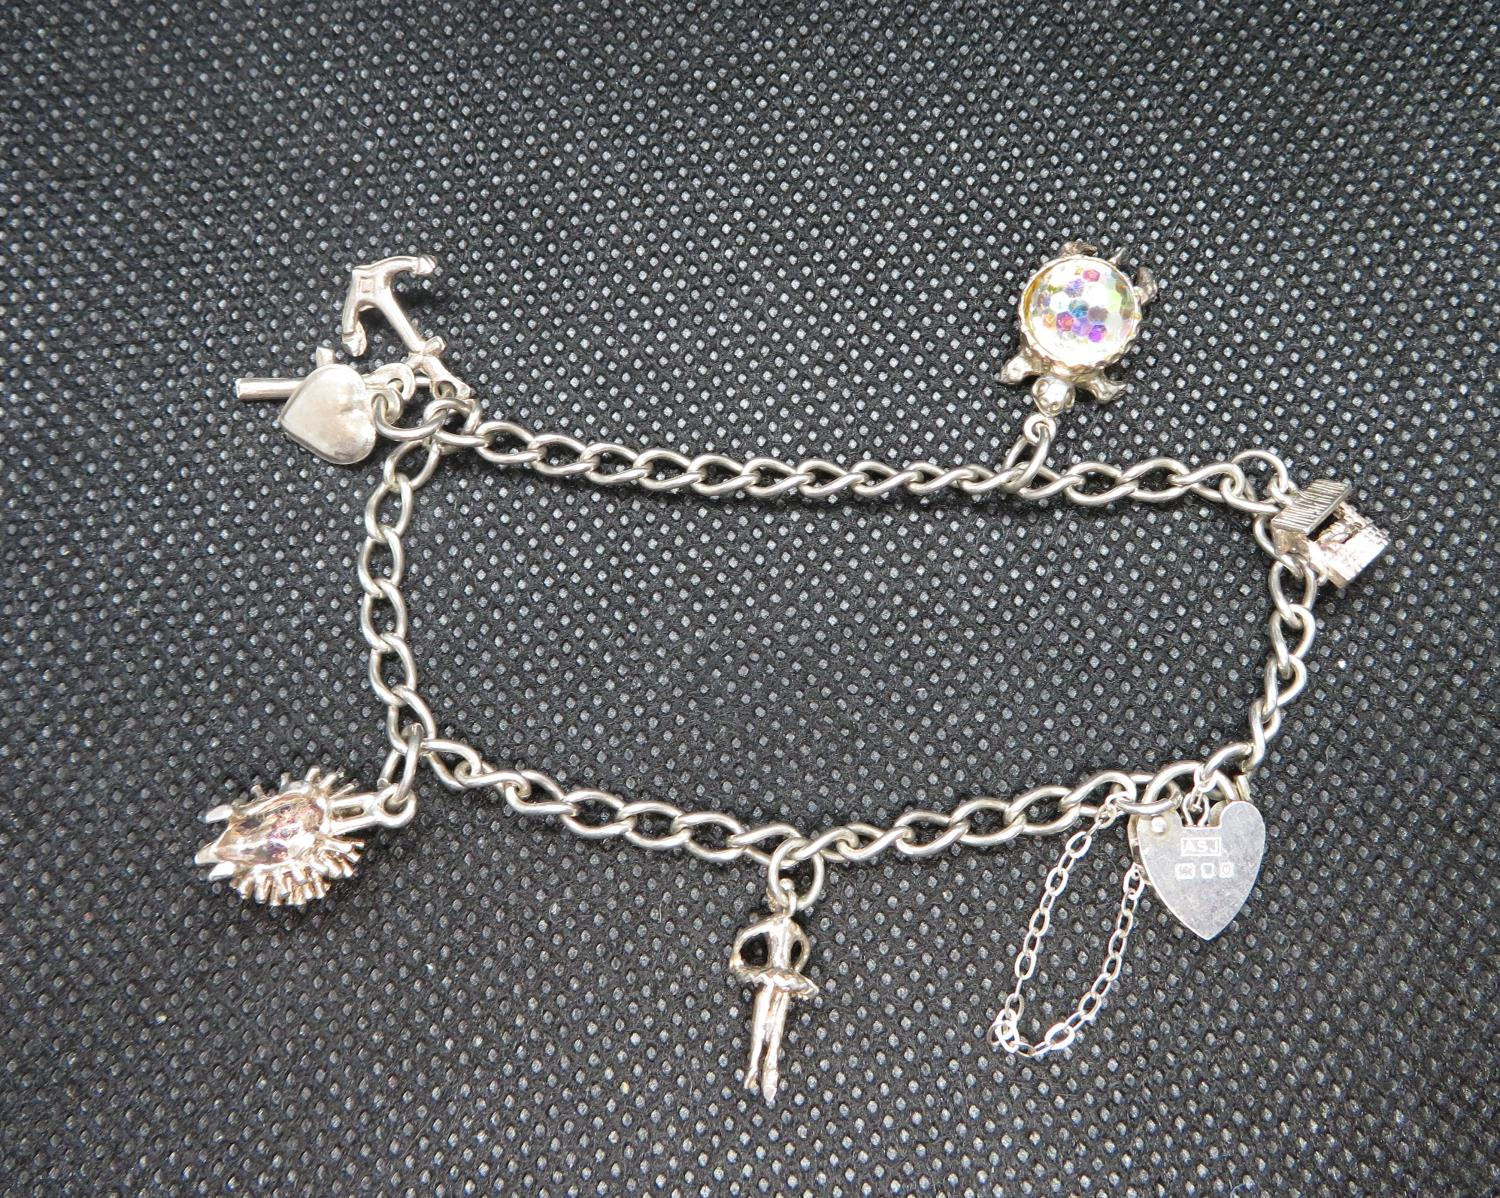 Lot 34 - Silver charm bracelet with 5 dainty charms HM London 1988 11g